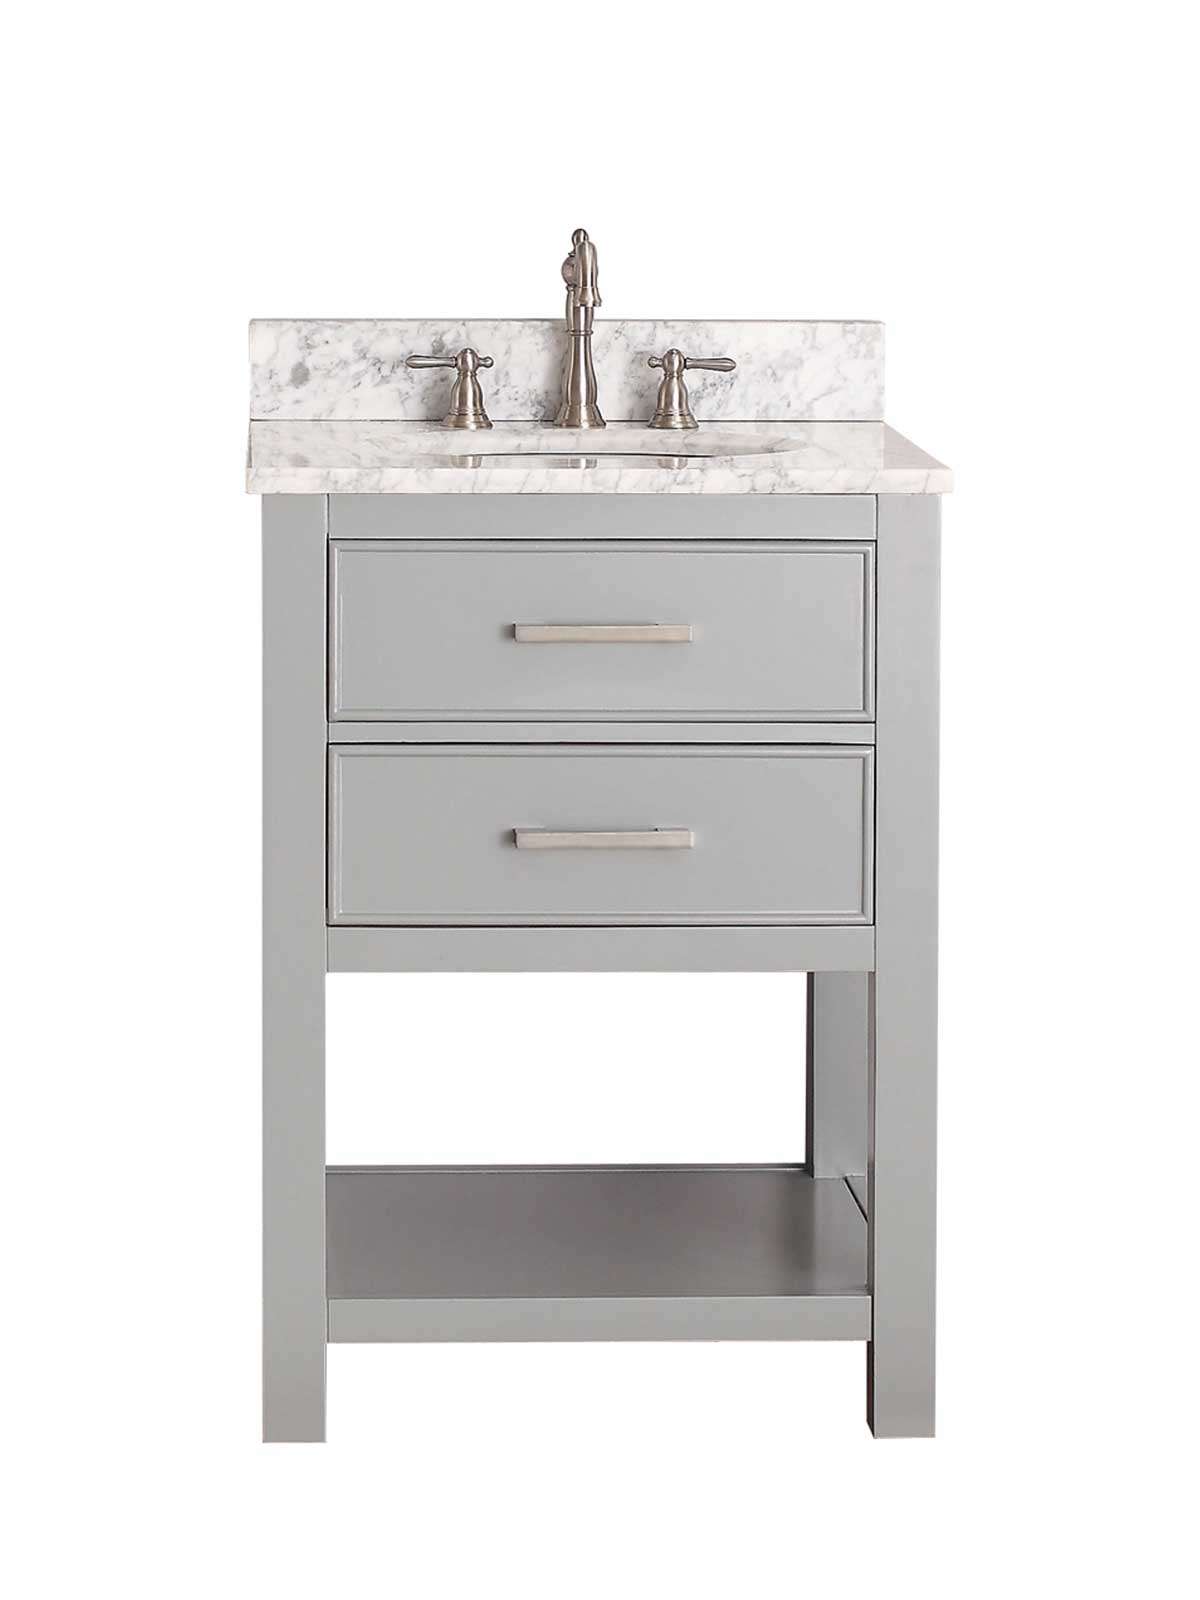 "25"" Begonia Single Bath Vanity - Chilled Gray with Carrara White Marble Top"